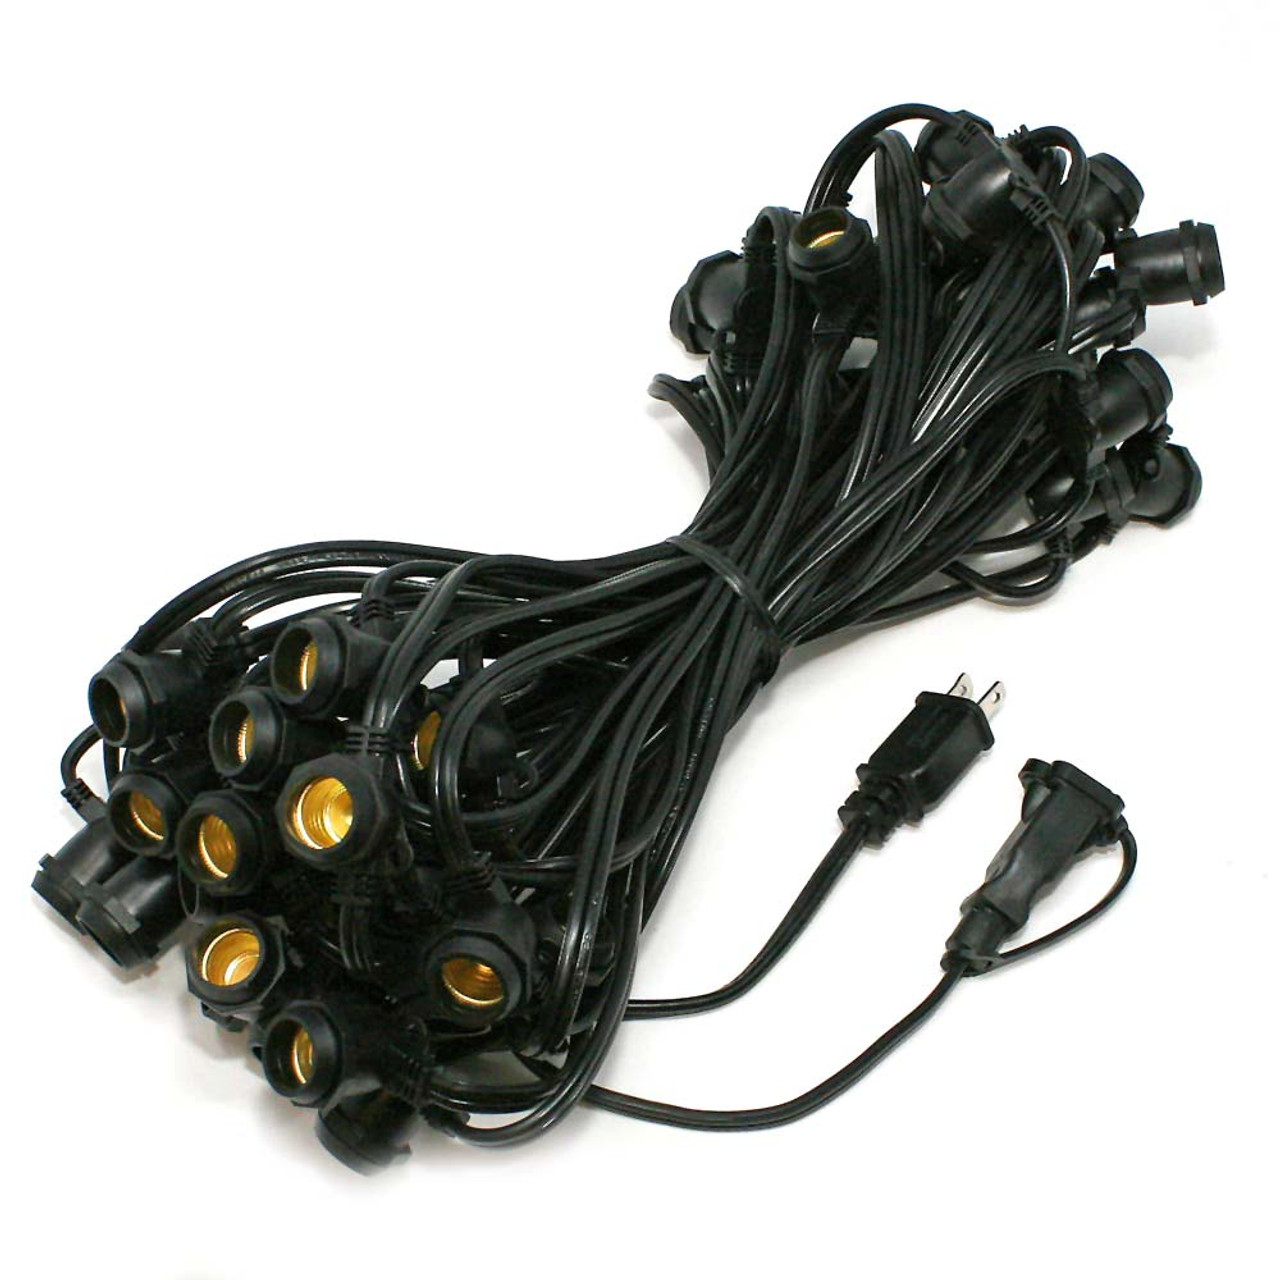 C9 Commercial String Lights 56 Ft Black Commercial C9 Cords